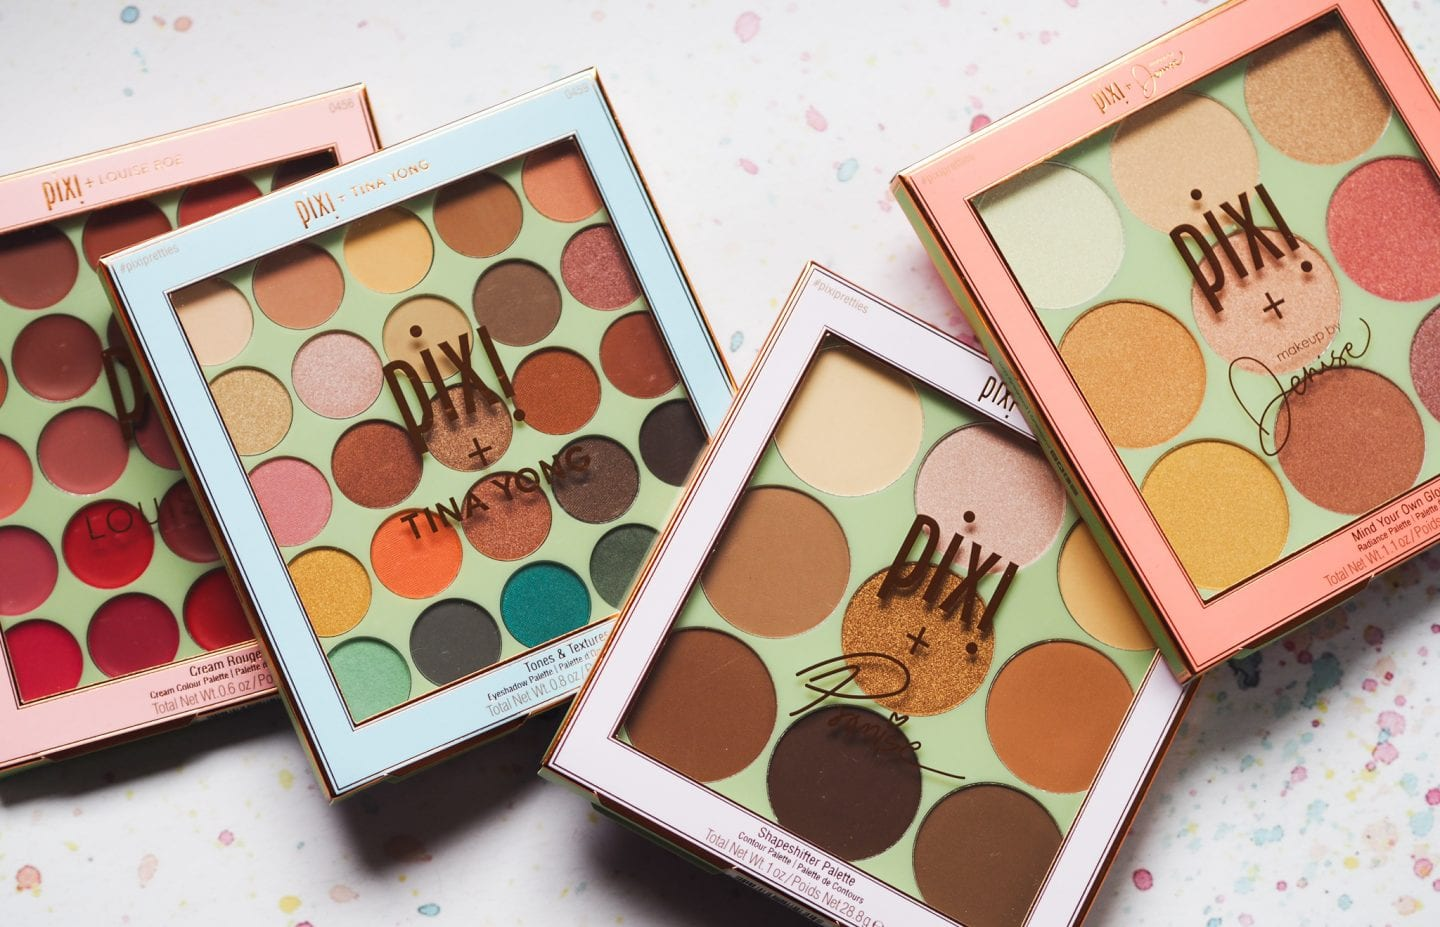 OMG! Have you seen the NEW #PixiPretties Palettes!?